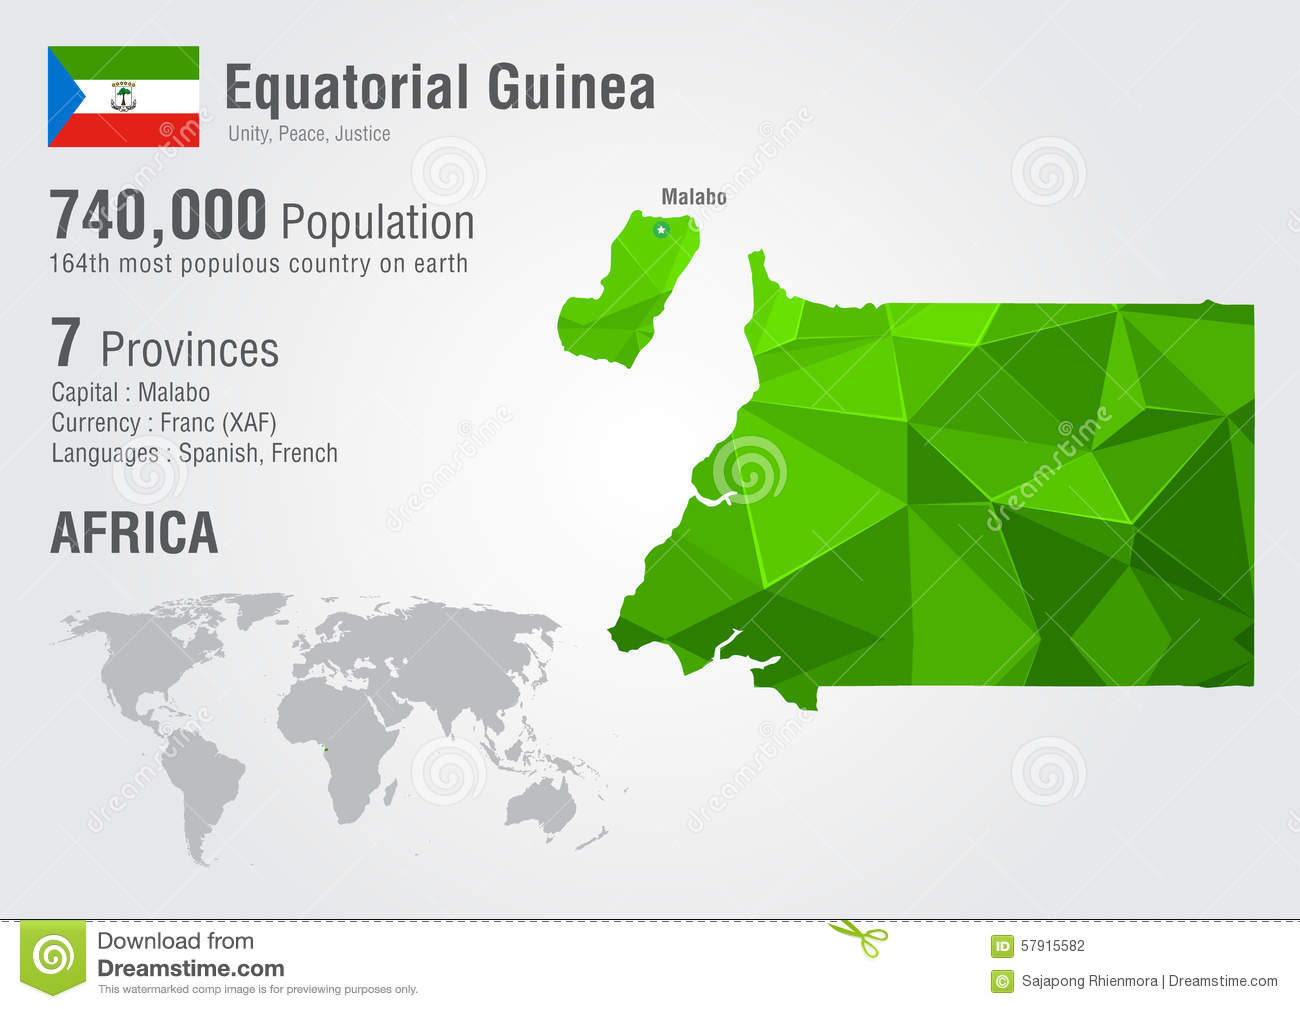 Equatorial Guinea World Map With A Pixel Diamond Texture ... on map showing algeria and guinea, map of equatorial guinea in madrid, the capital of guinea ecuatorial in spanish, map of nigeria biafra, guinea ecuatorial map in spanish, map of africa, map of only equatorial guinea, map of mbini river, map of equatorial guinea in spain,